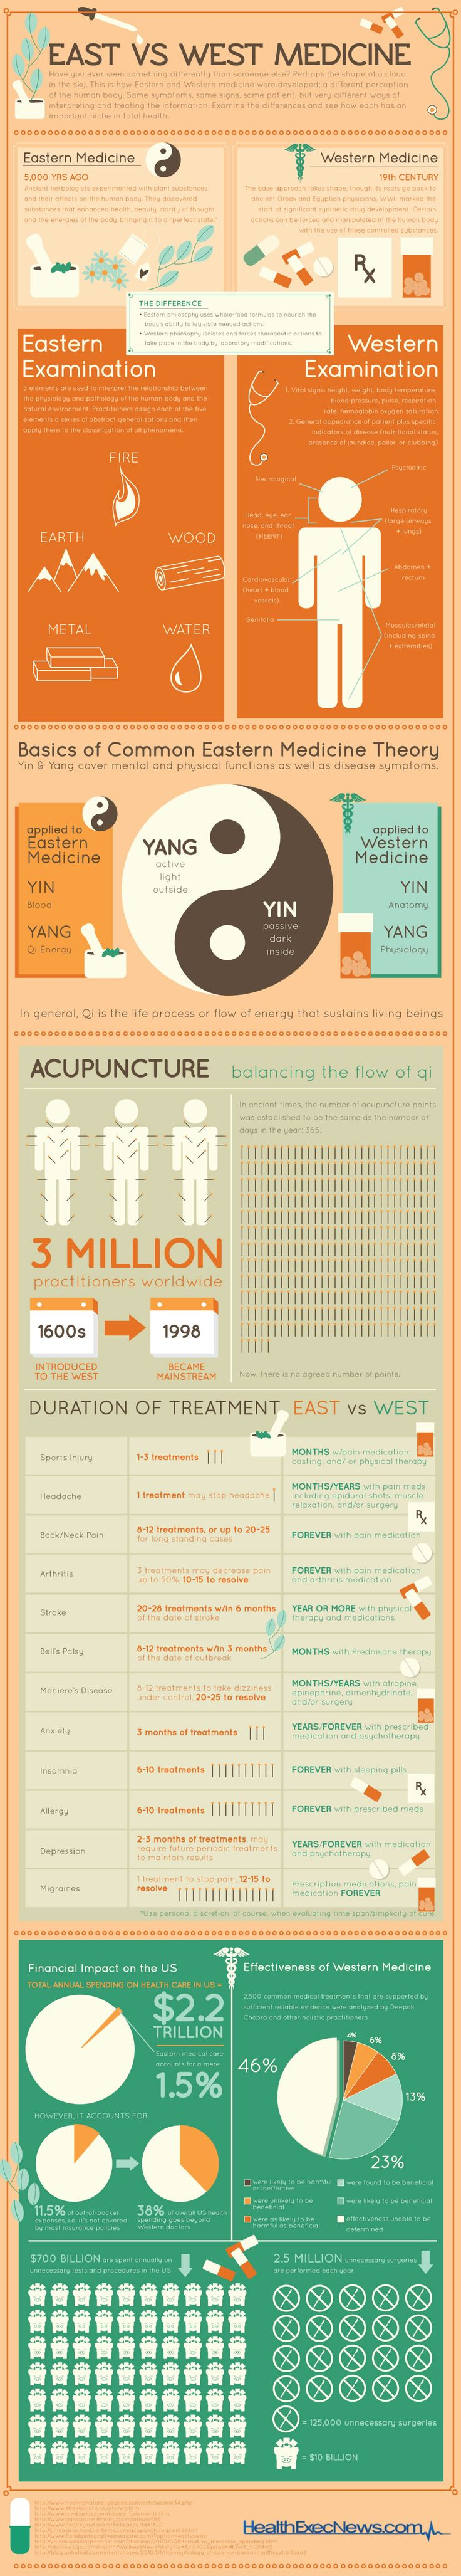 Many are beginning to see the preventative and healing power of ancient practices that originated in the East.  Such as, Acupuncture, Chinese Herbal Remedies, Yoga, Cupping, Natural herbal supplement(Lots of herbal supplement. Chinese medicine already use it as one of ingredient start long time ago before they make it as product.).   The infographic below highlights the many distinctions between the two approaches :D